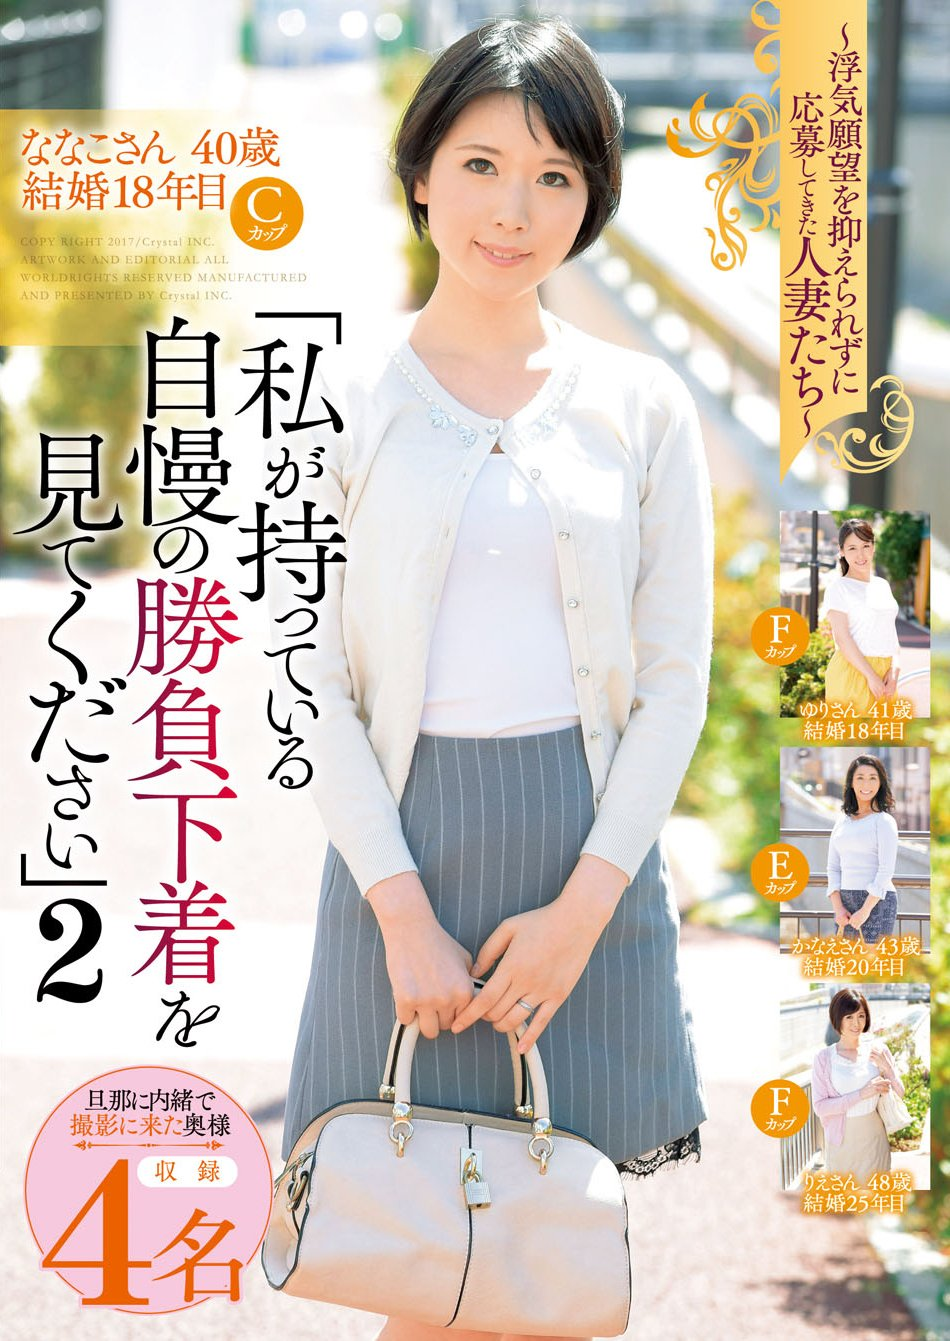 Amazon.com: JAPANESE ADULT CONTENT (Pixelated) Married